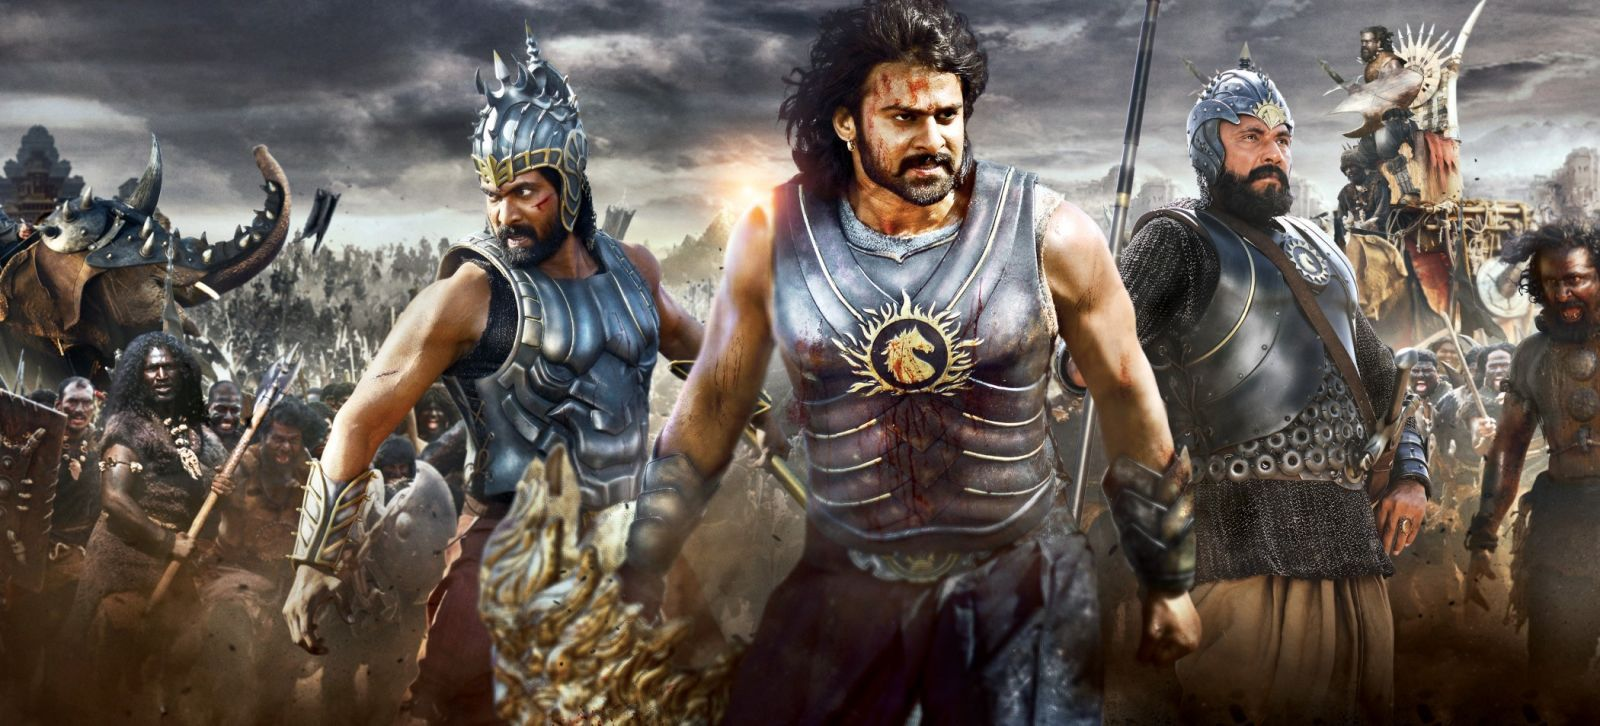 Wallpaper download bahubali - Bahubali 2 Hd Images Photos Wallpapers Latest Free Hd Wallpapers